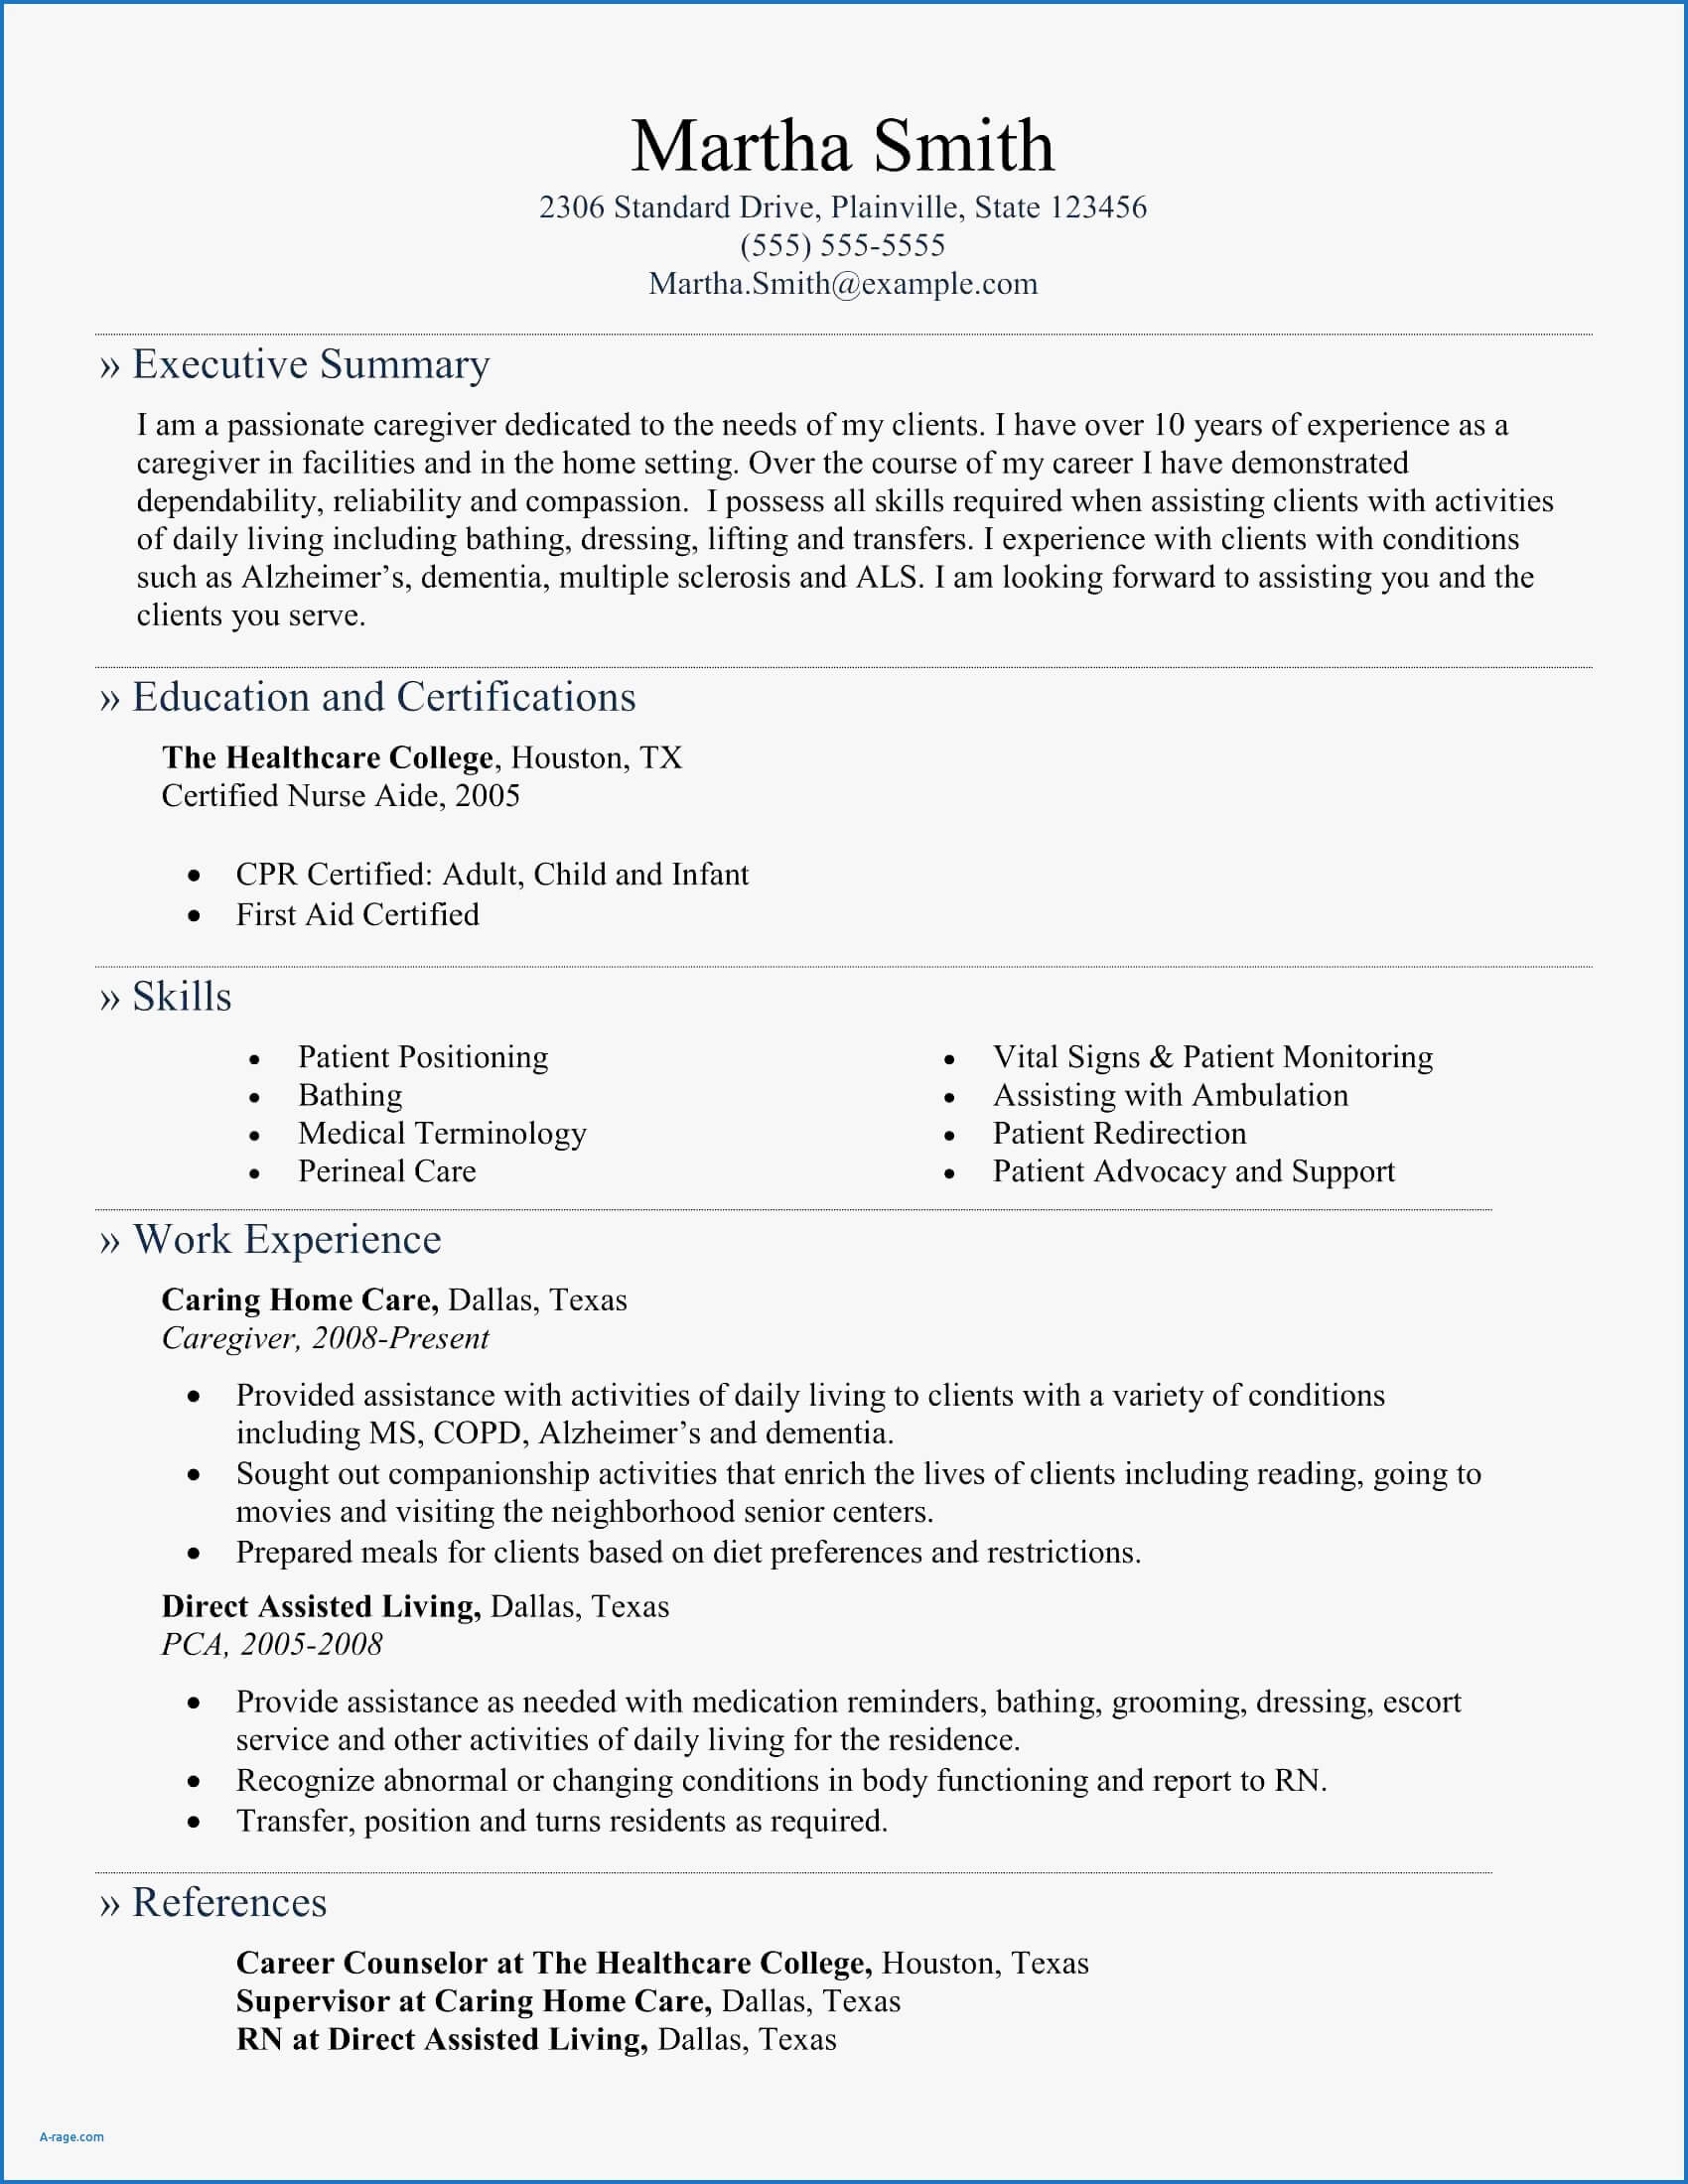 Nutritional Advisor Cover Letter New Clinical Counselor Intended For Community Service Template Word